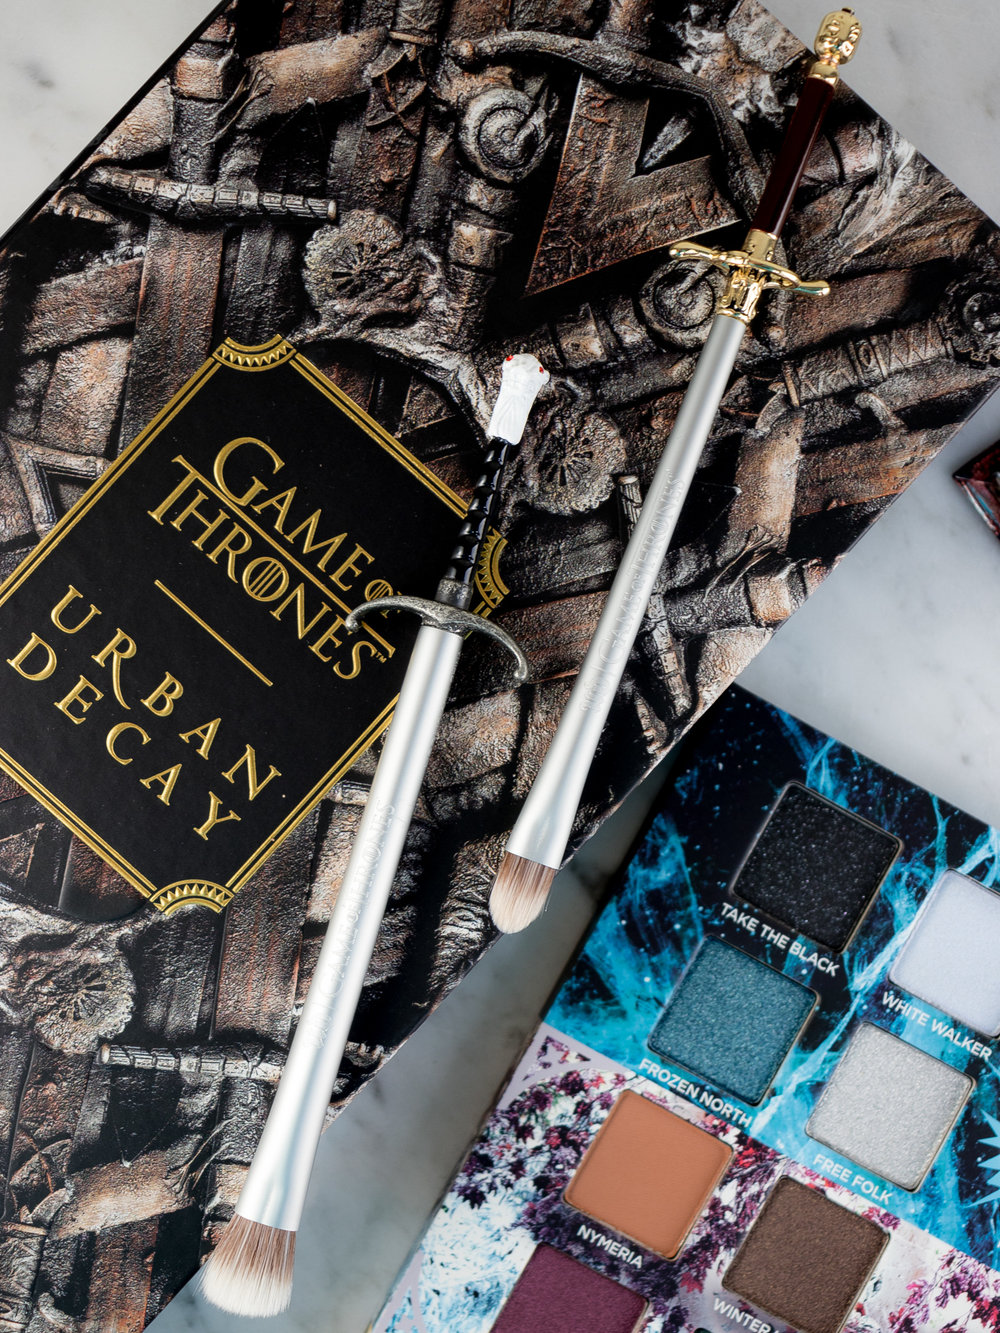 Urban Decay x Game of Thrones Makeup Collection